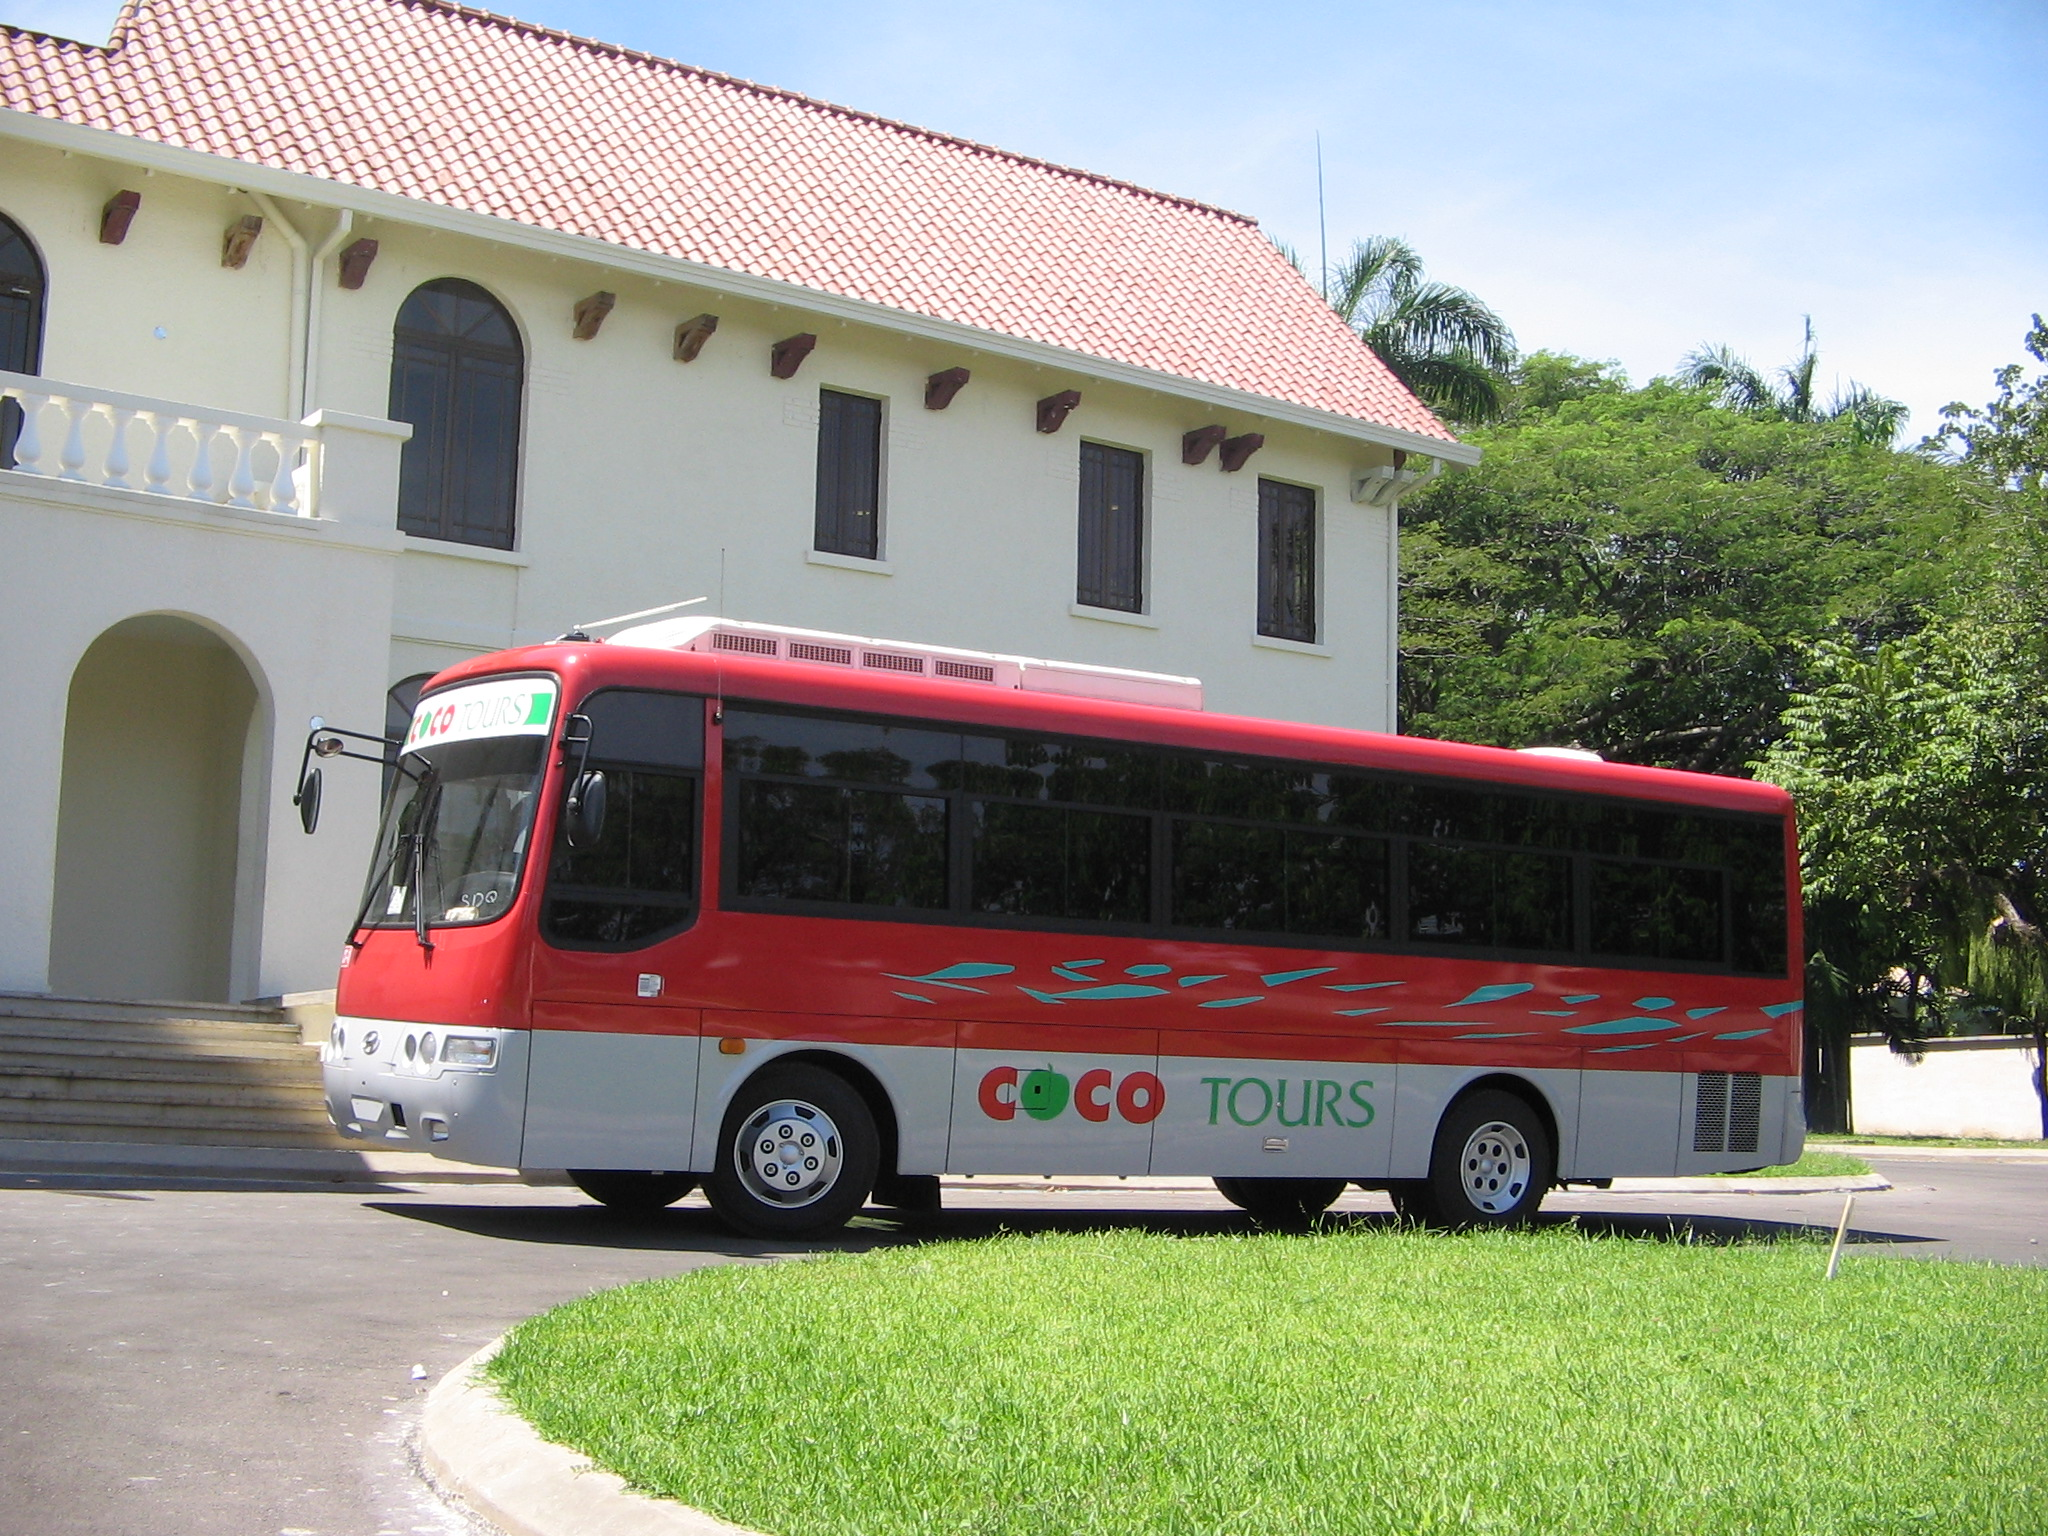 Larger Cocotours bus used on the route from Punta Cana to Amber Cove